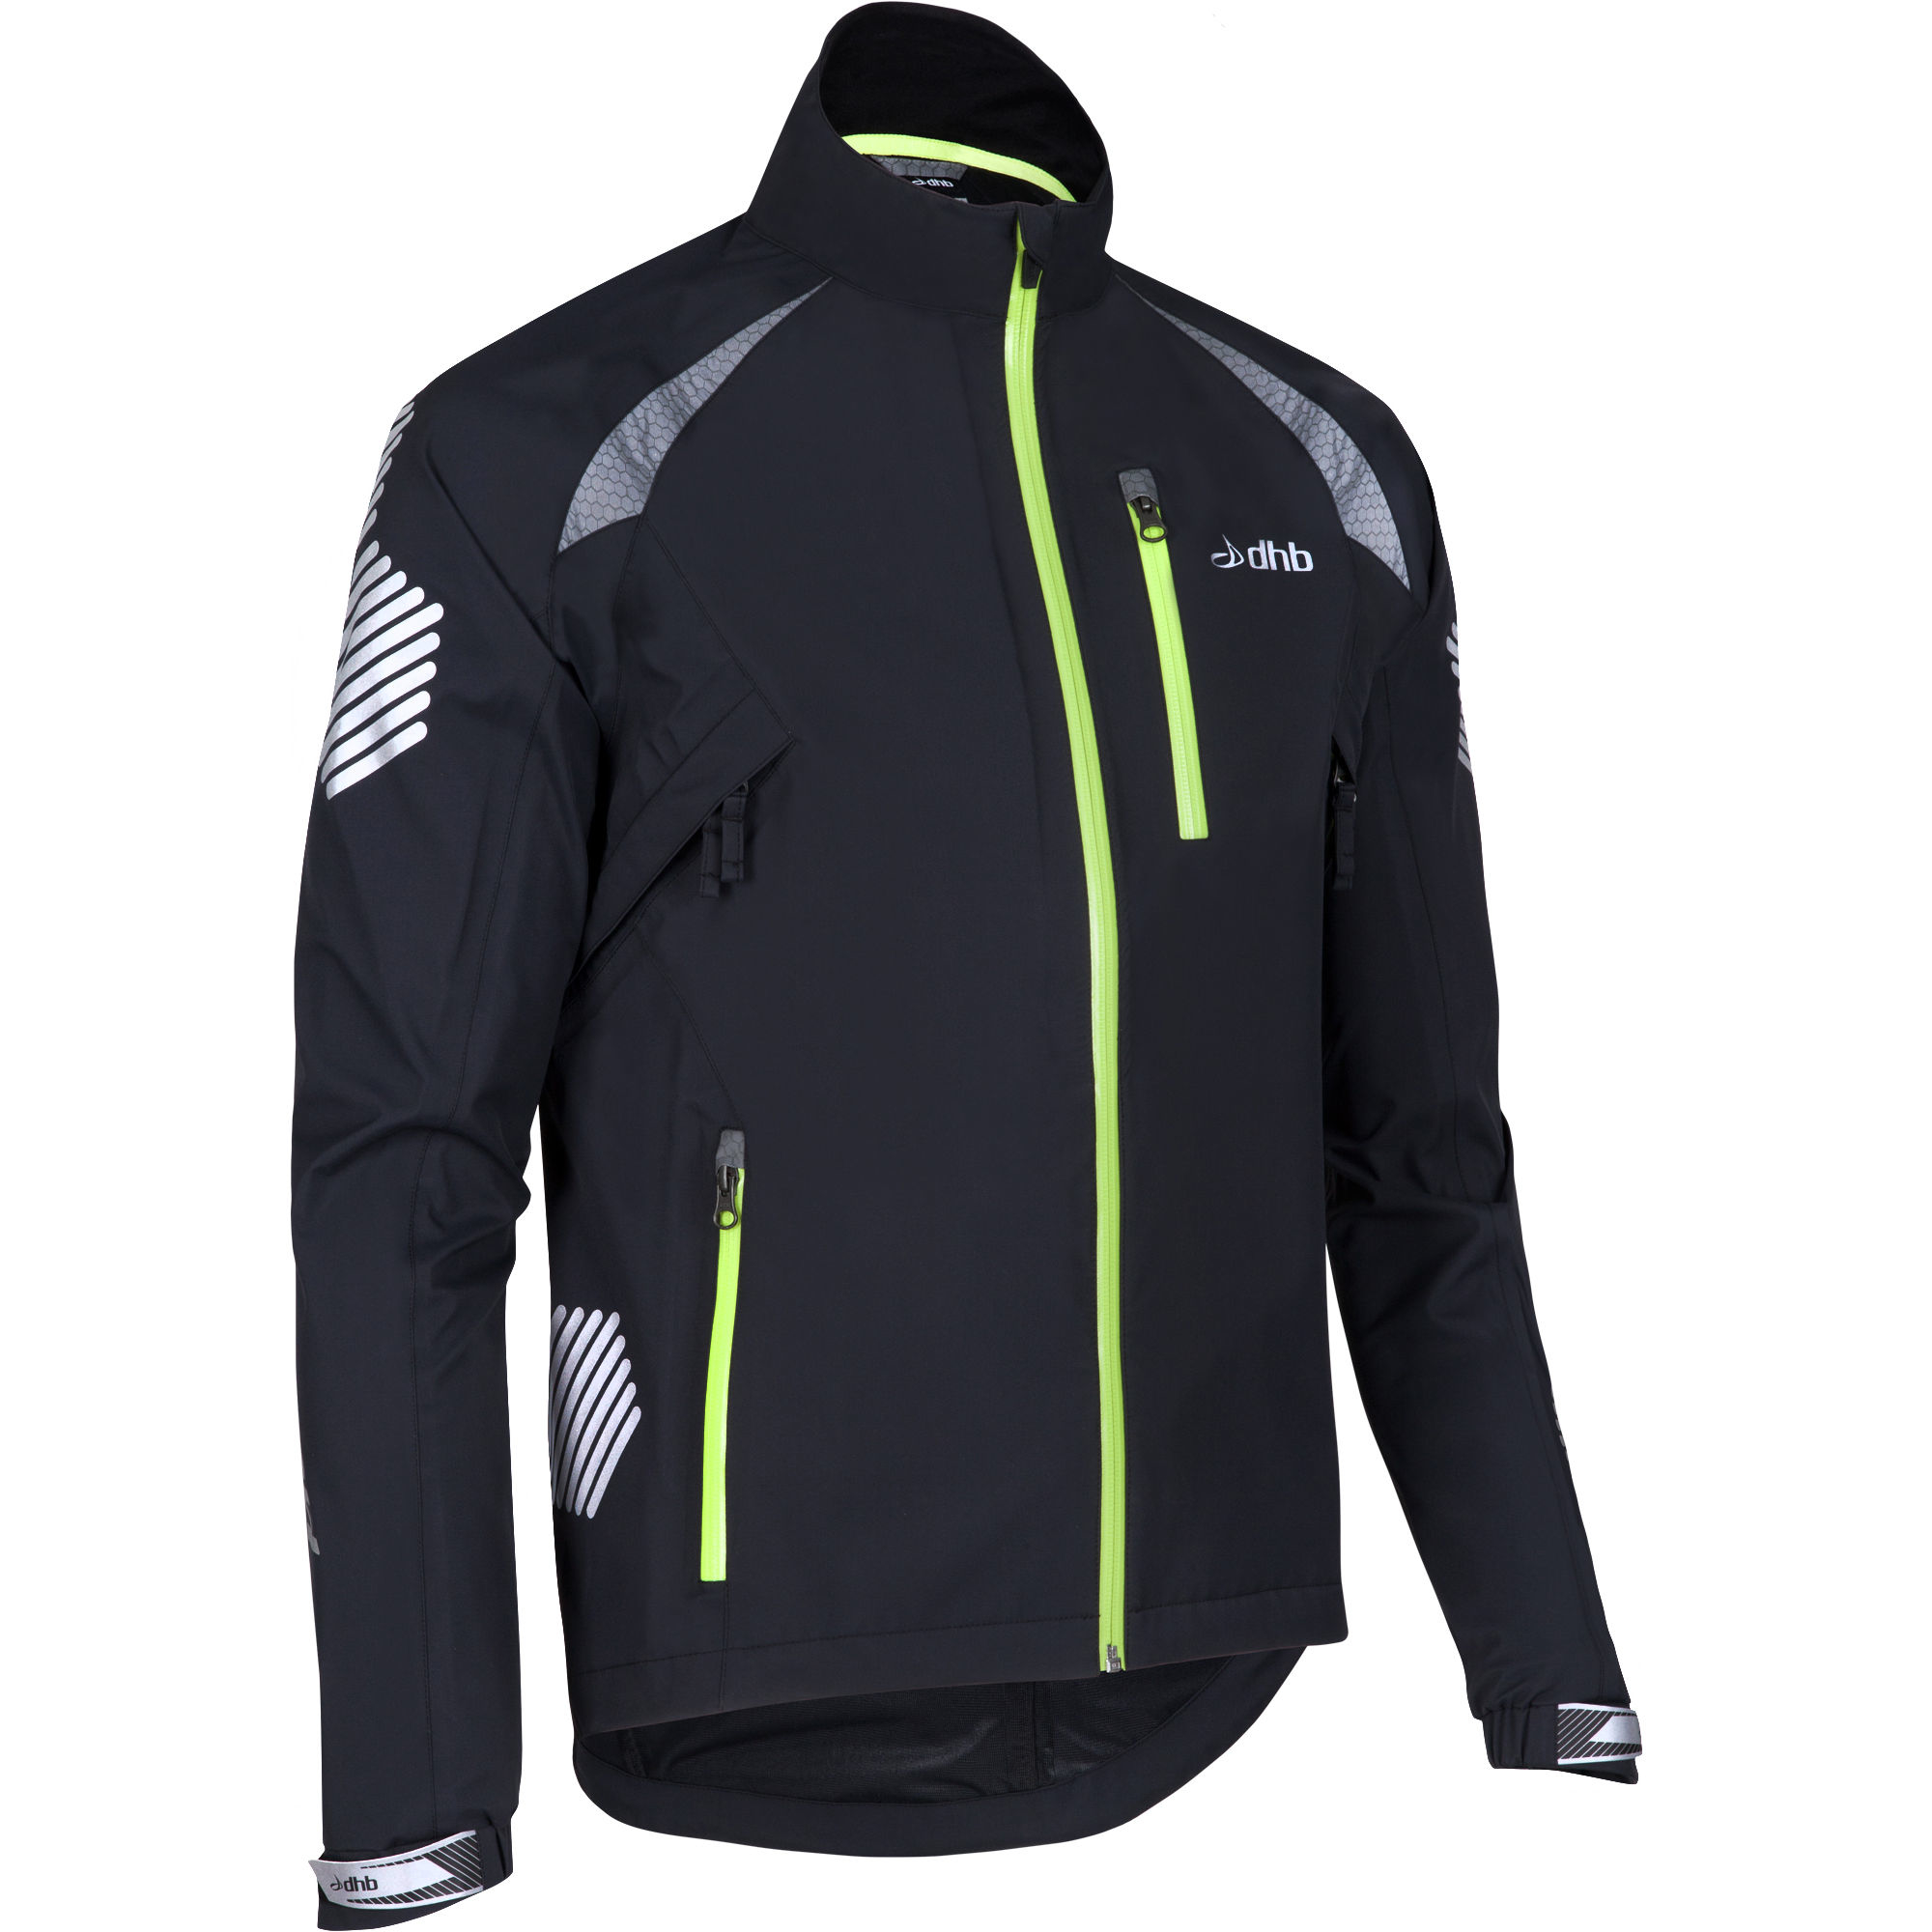 dhbheadline. Highline Waterproof Jacket. At the top of the new ... a22ce59fd